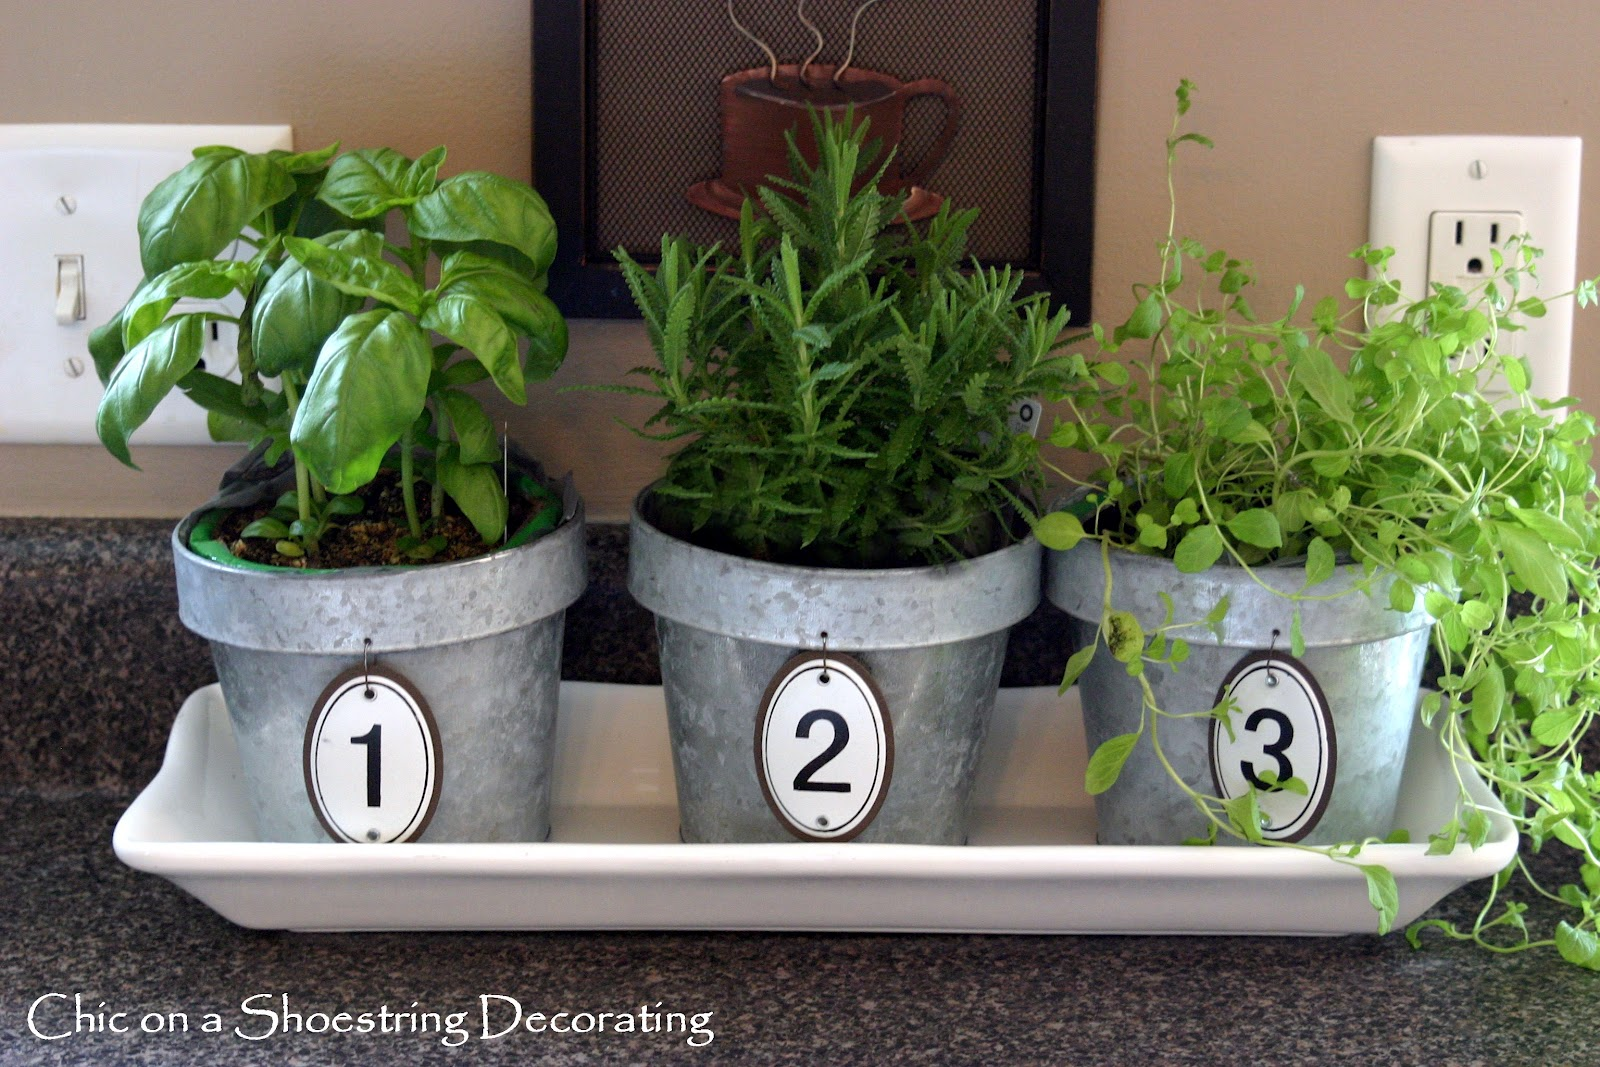 Chic on a Shoestring Decorating: Kitchen Herbs in Numbered ...